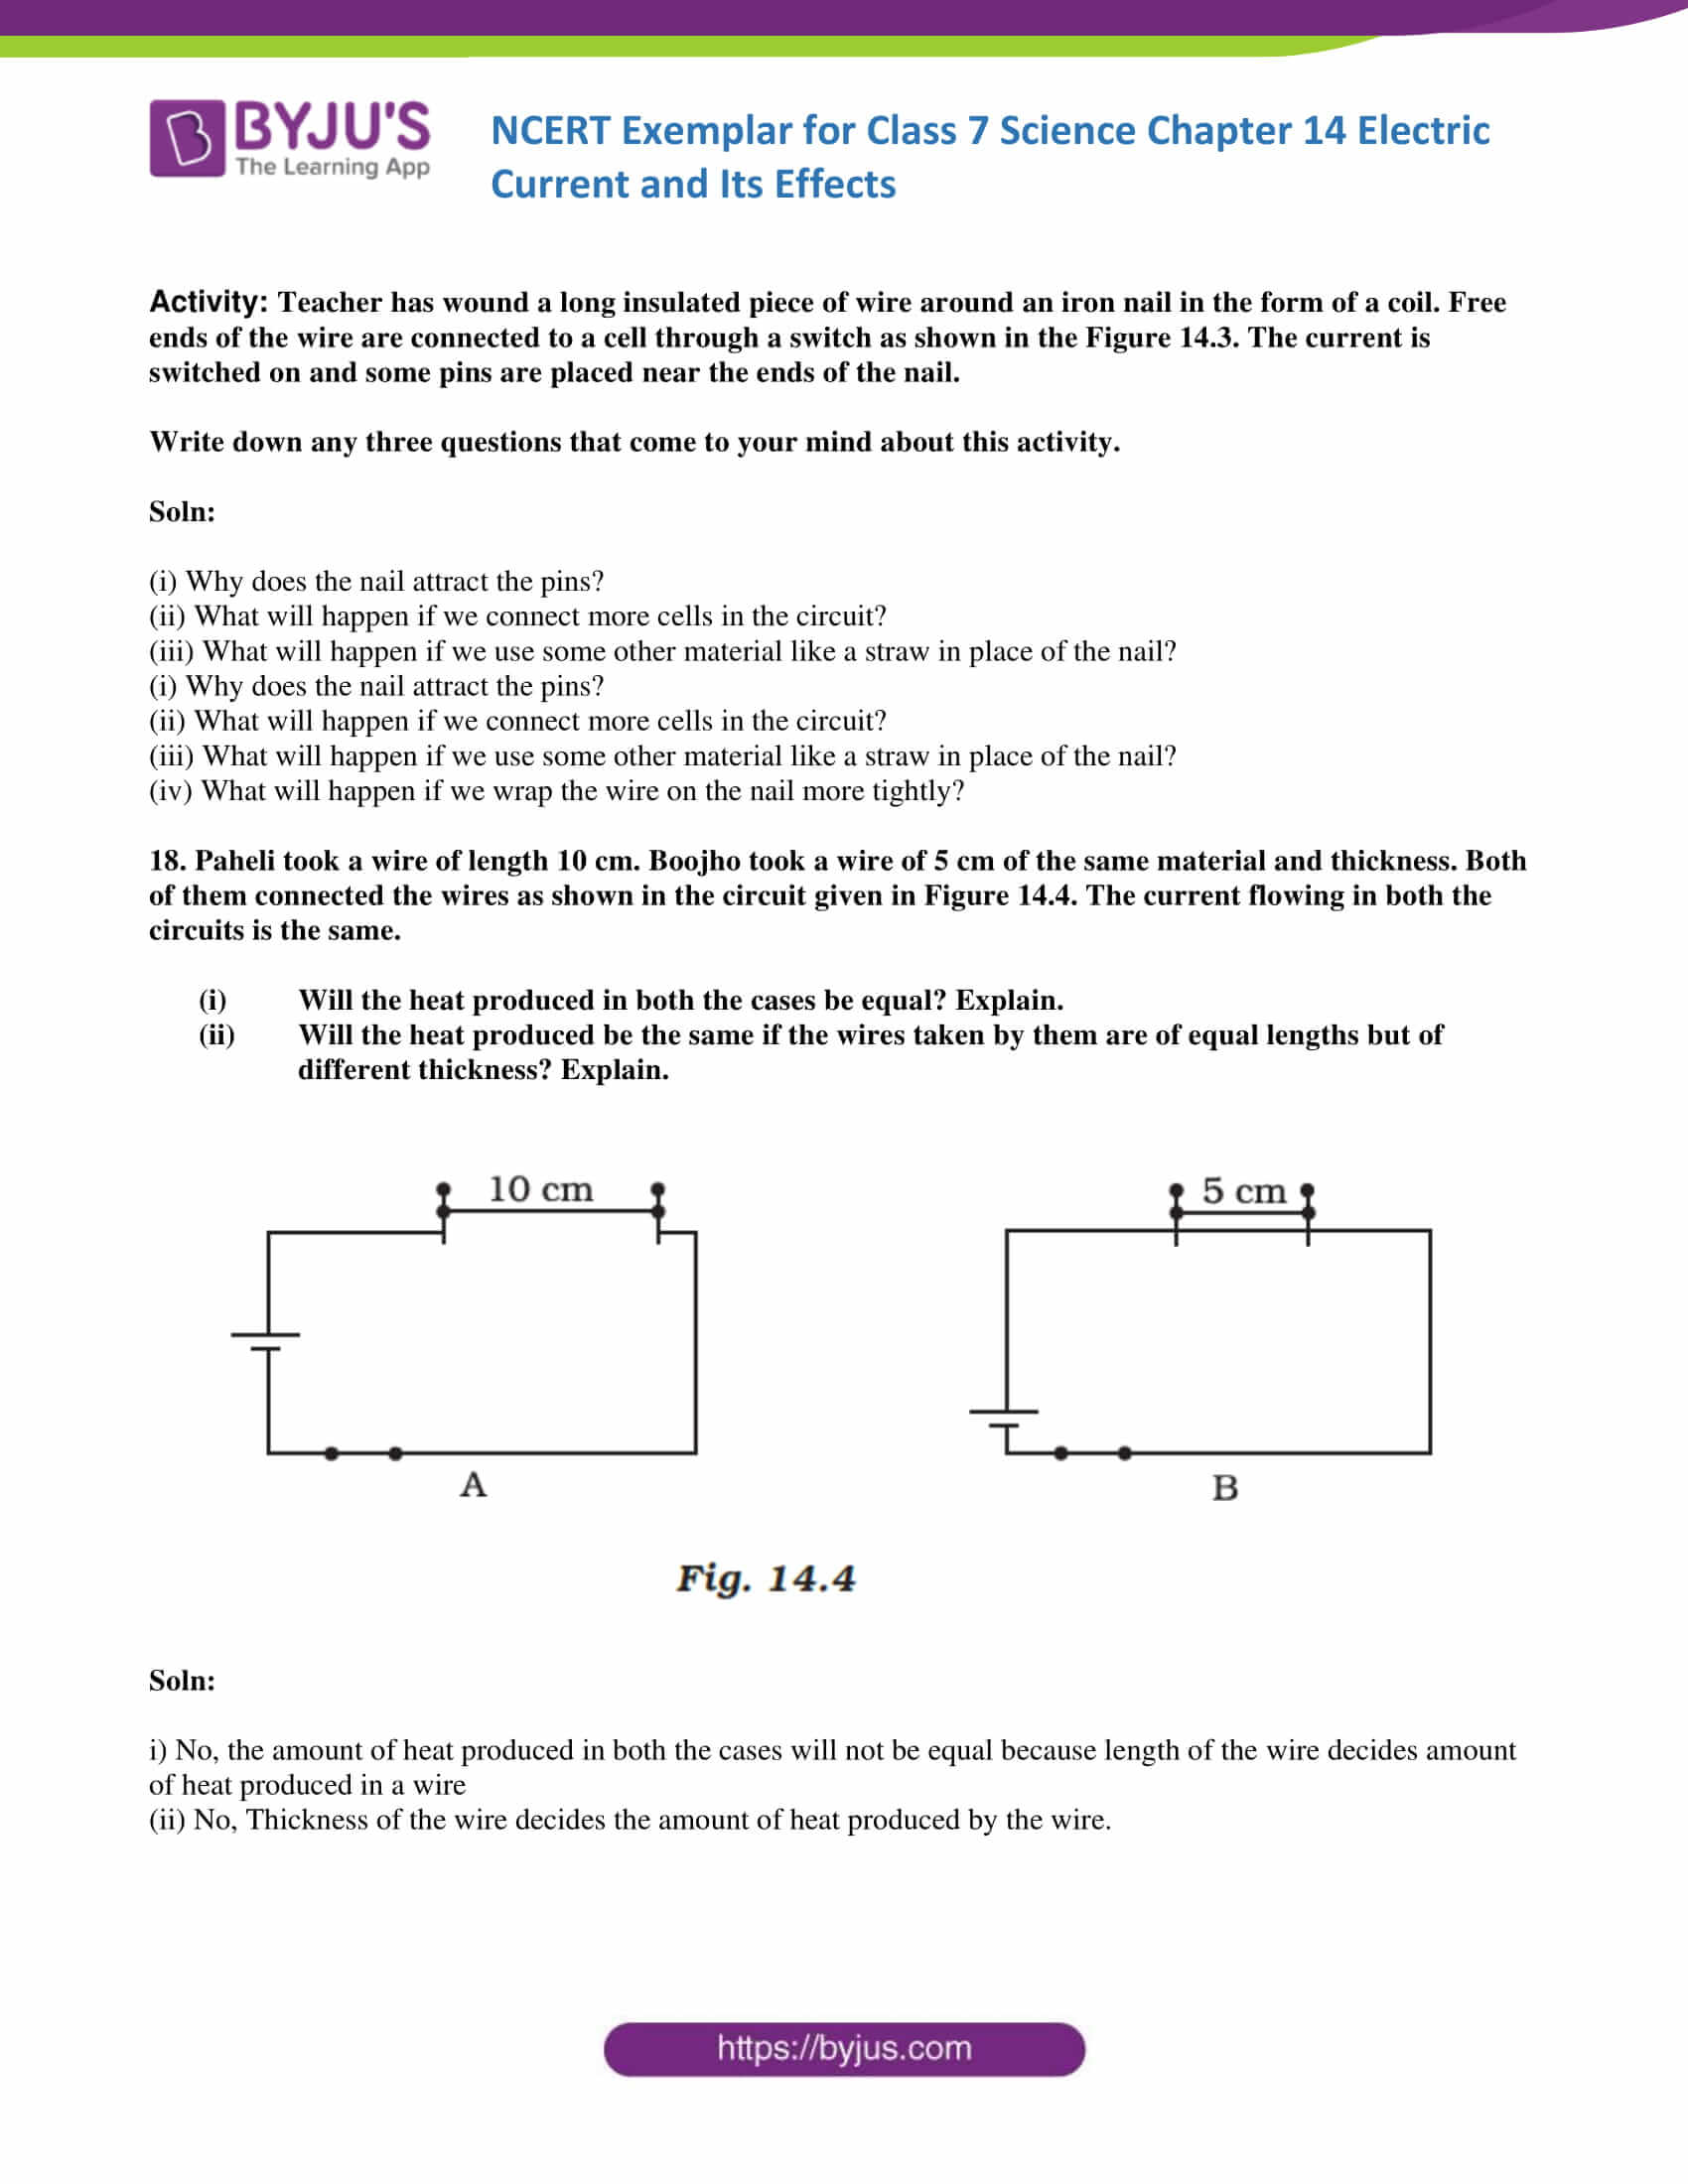 NCERT Exemplar solution class 7 science Chapter 14 6